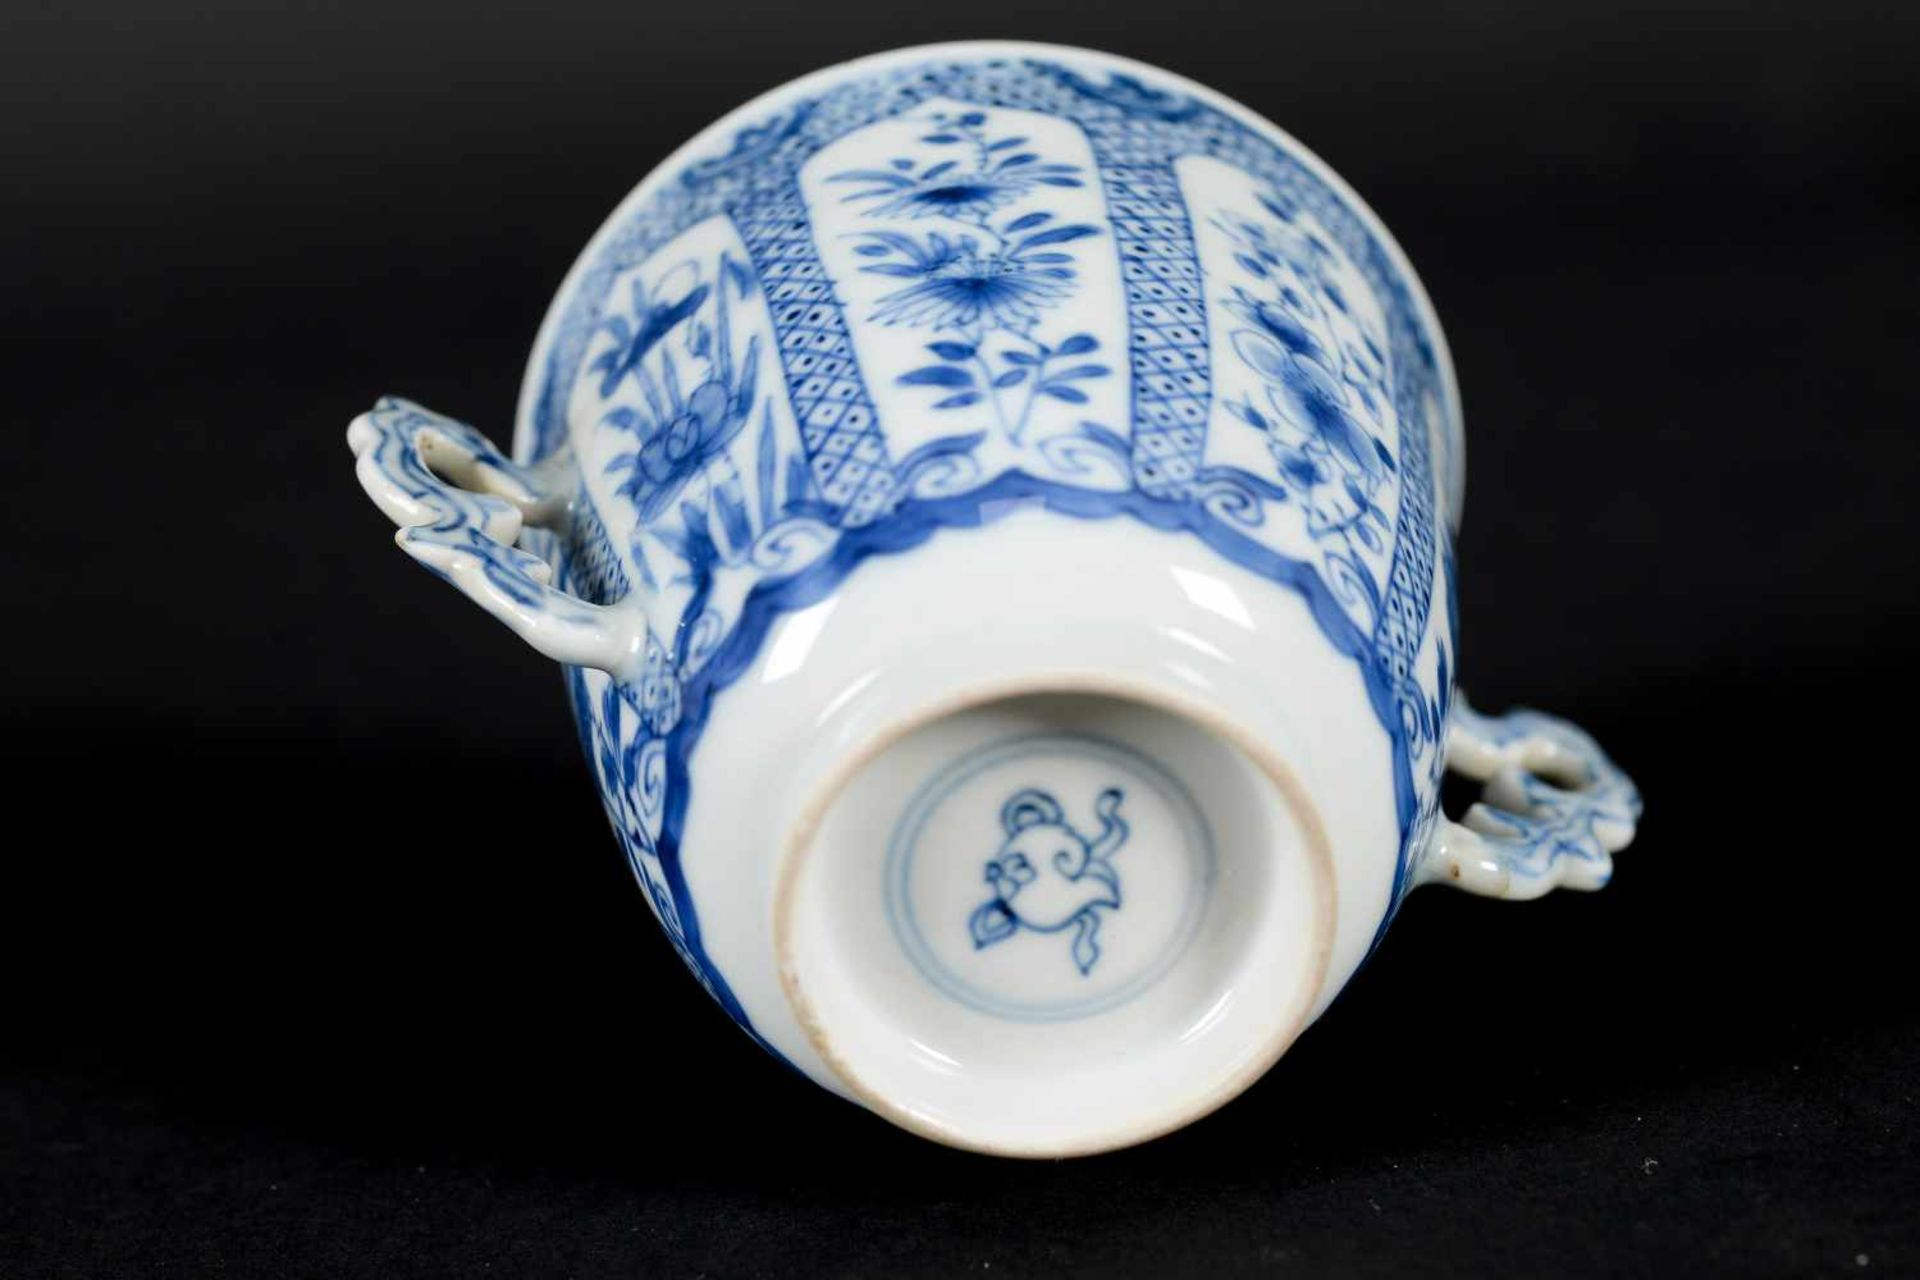 A blue and white porcelain lidded cup with two handles on a deep saucer, decorated with flowers. - Bild 9 aus 9